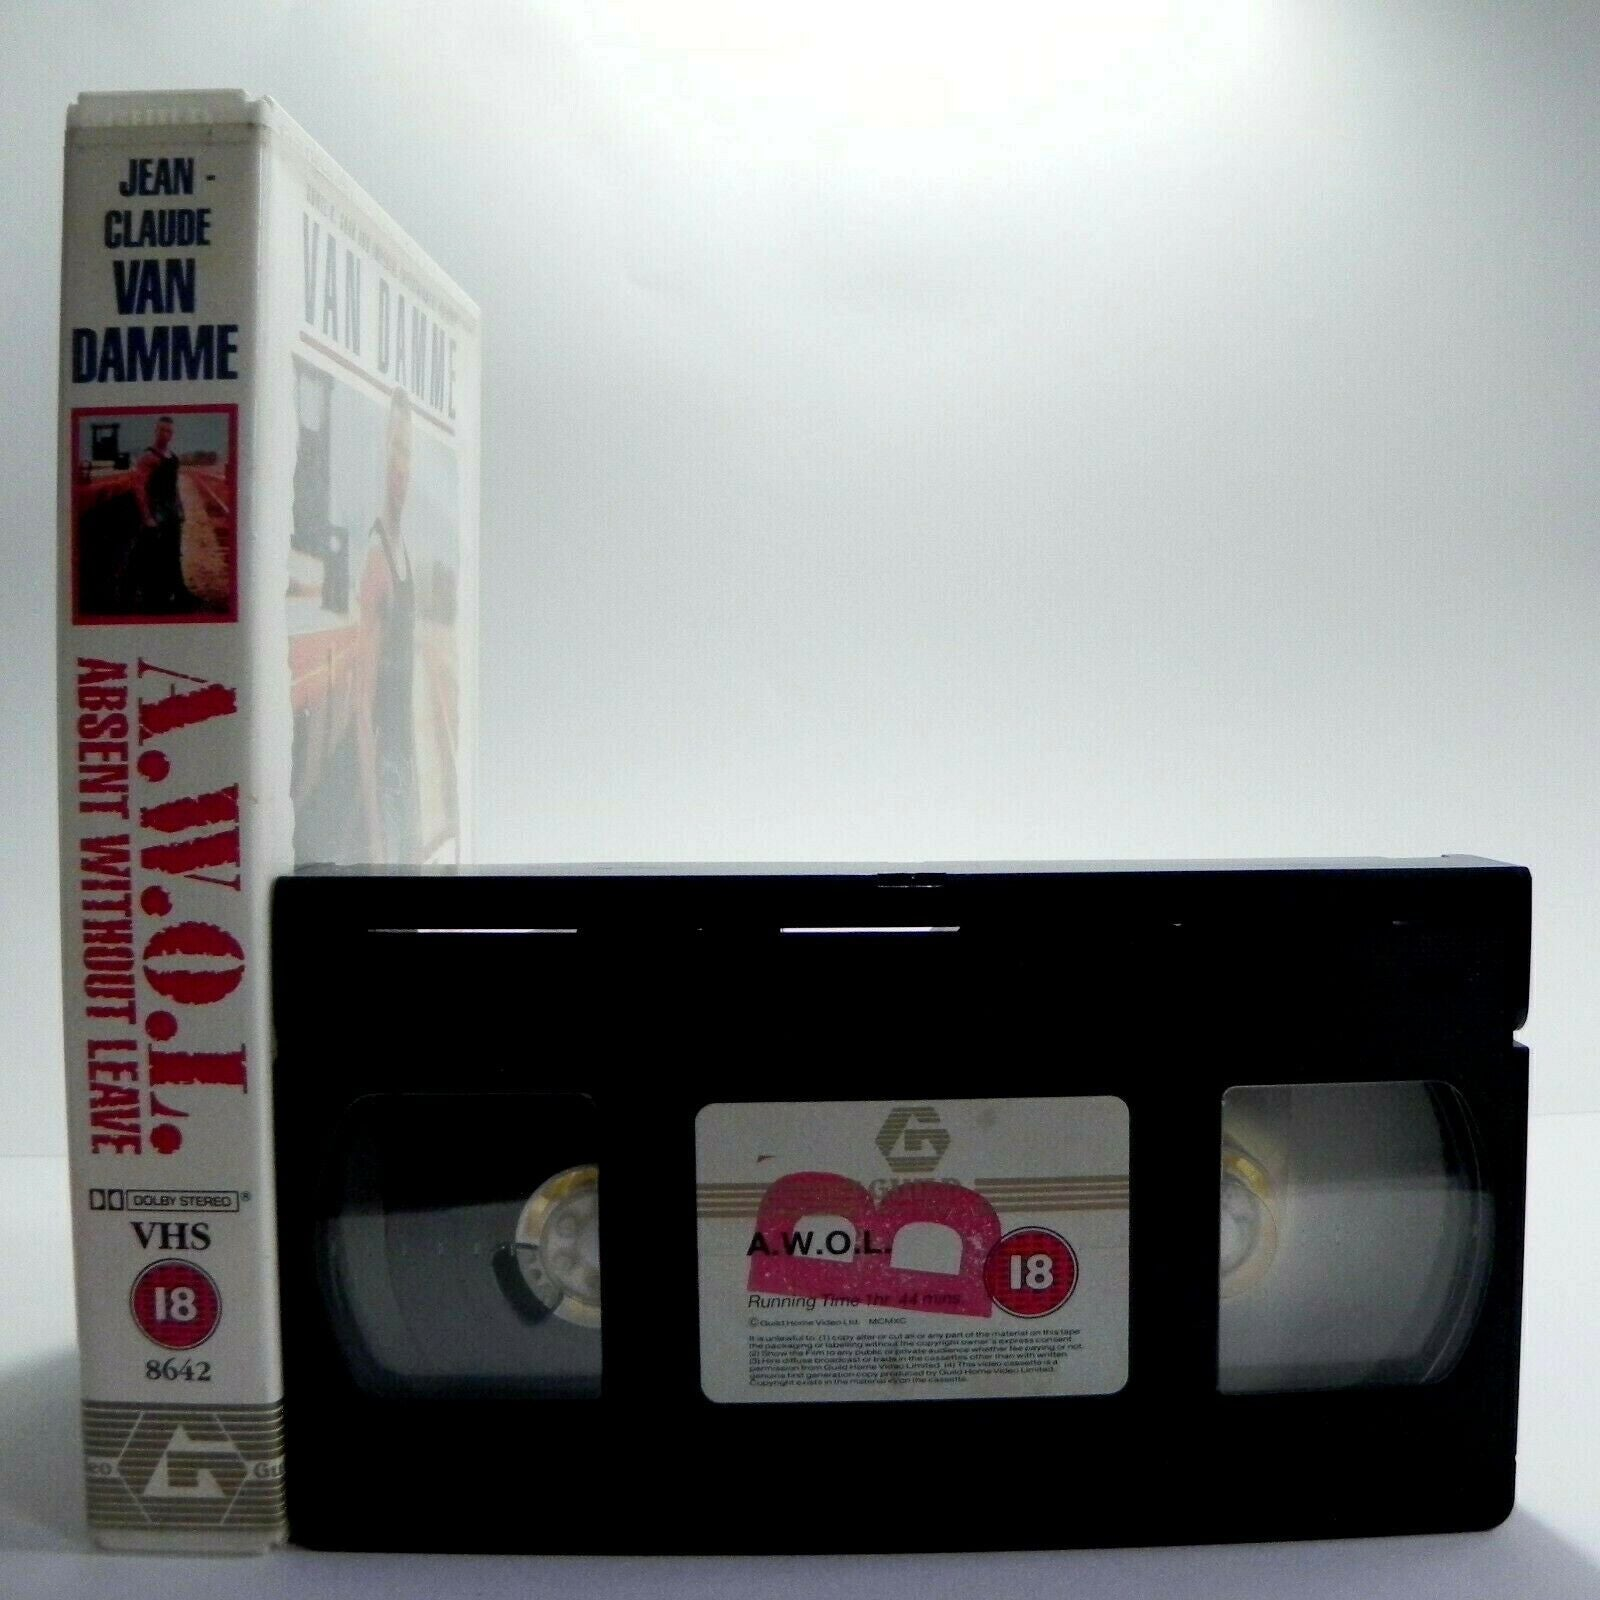 A.W.O.L.: Absent Without Leave - Large Box - Action - Van Damme - Pal VHS